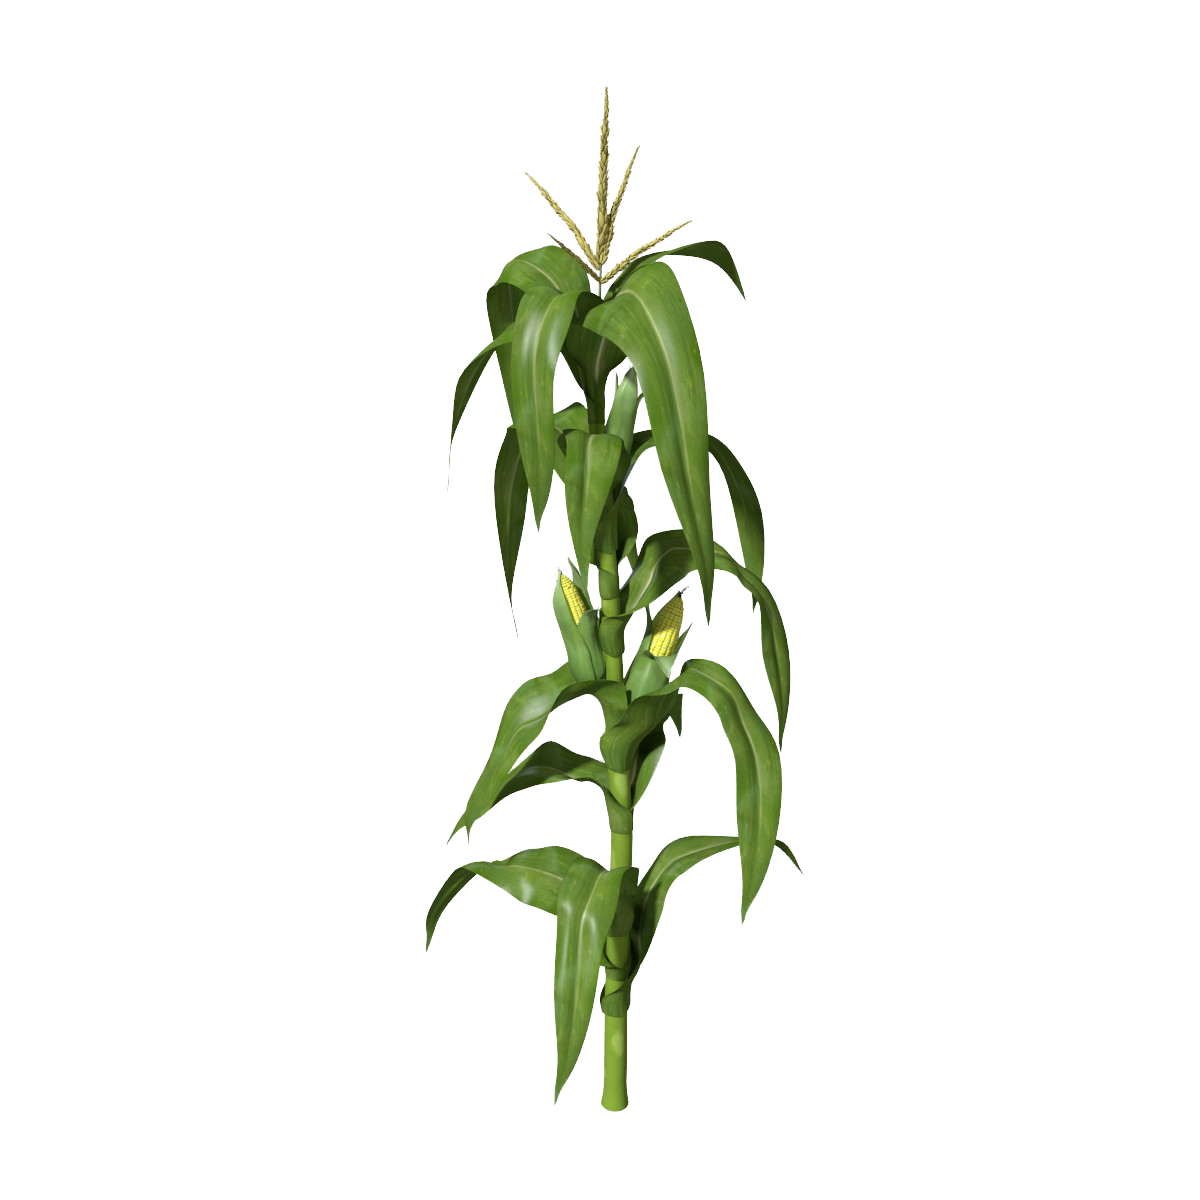 corn stalk png